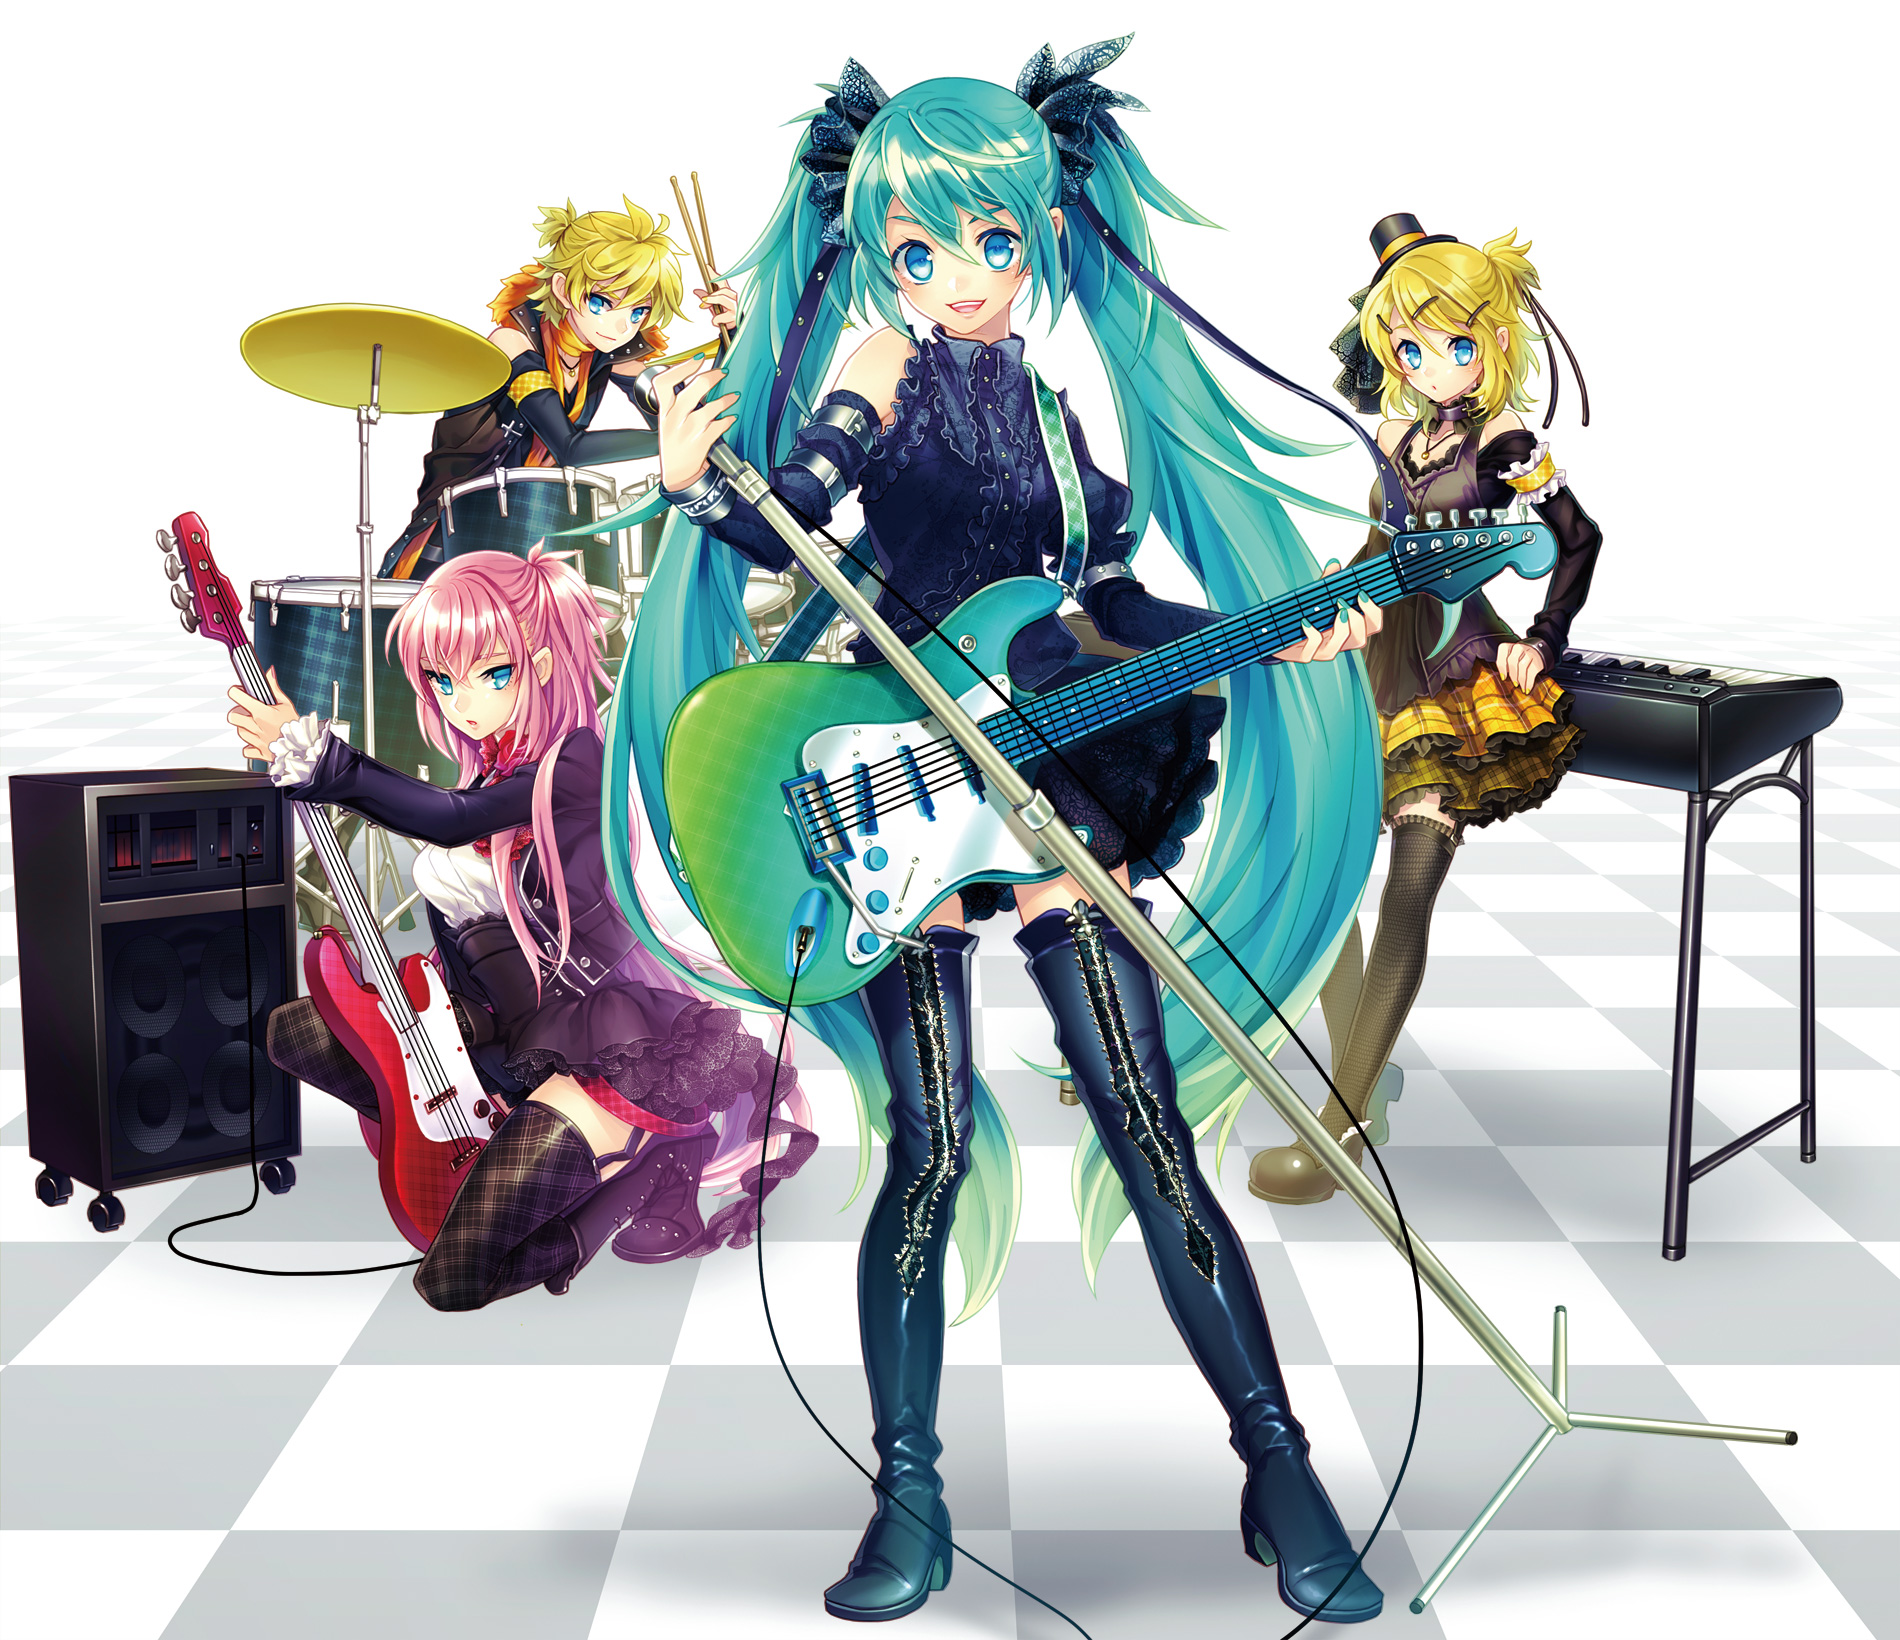 Msyugioh123 images miku band anime hd wallpaper and background photos